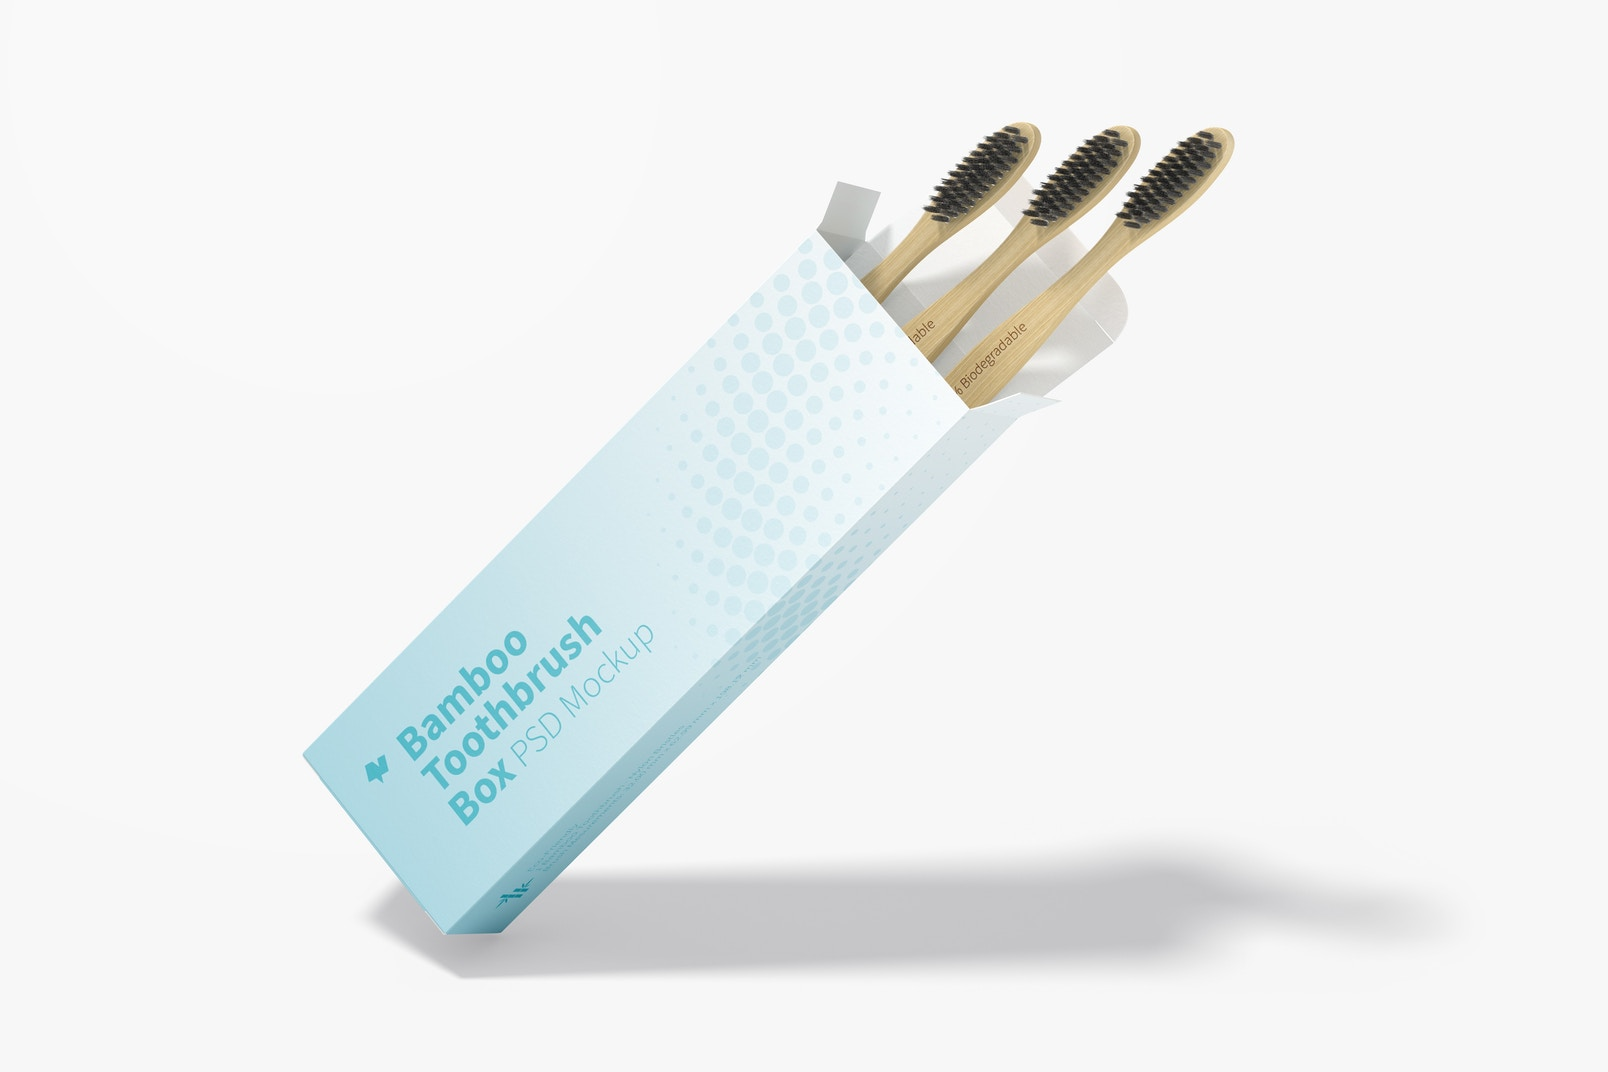 Bamboo Toothbrushes Box Mockup, Leaned